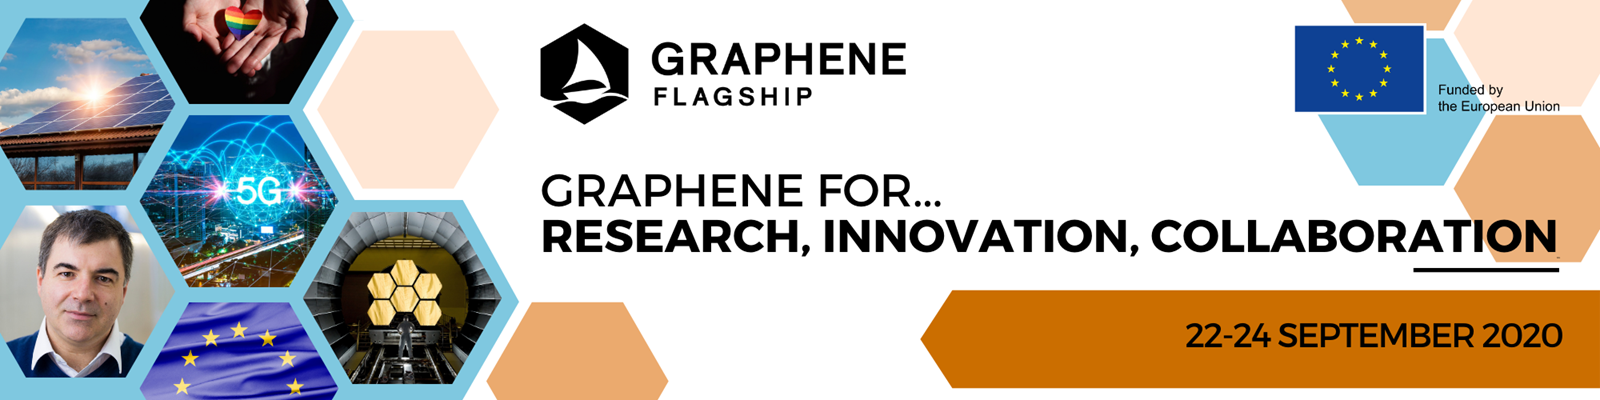 Graphene For Research, Innovation, Collaboration banner